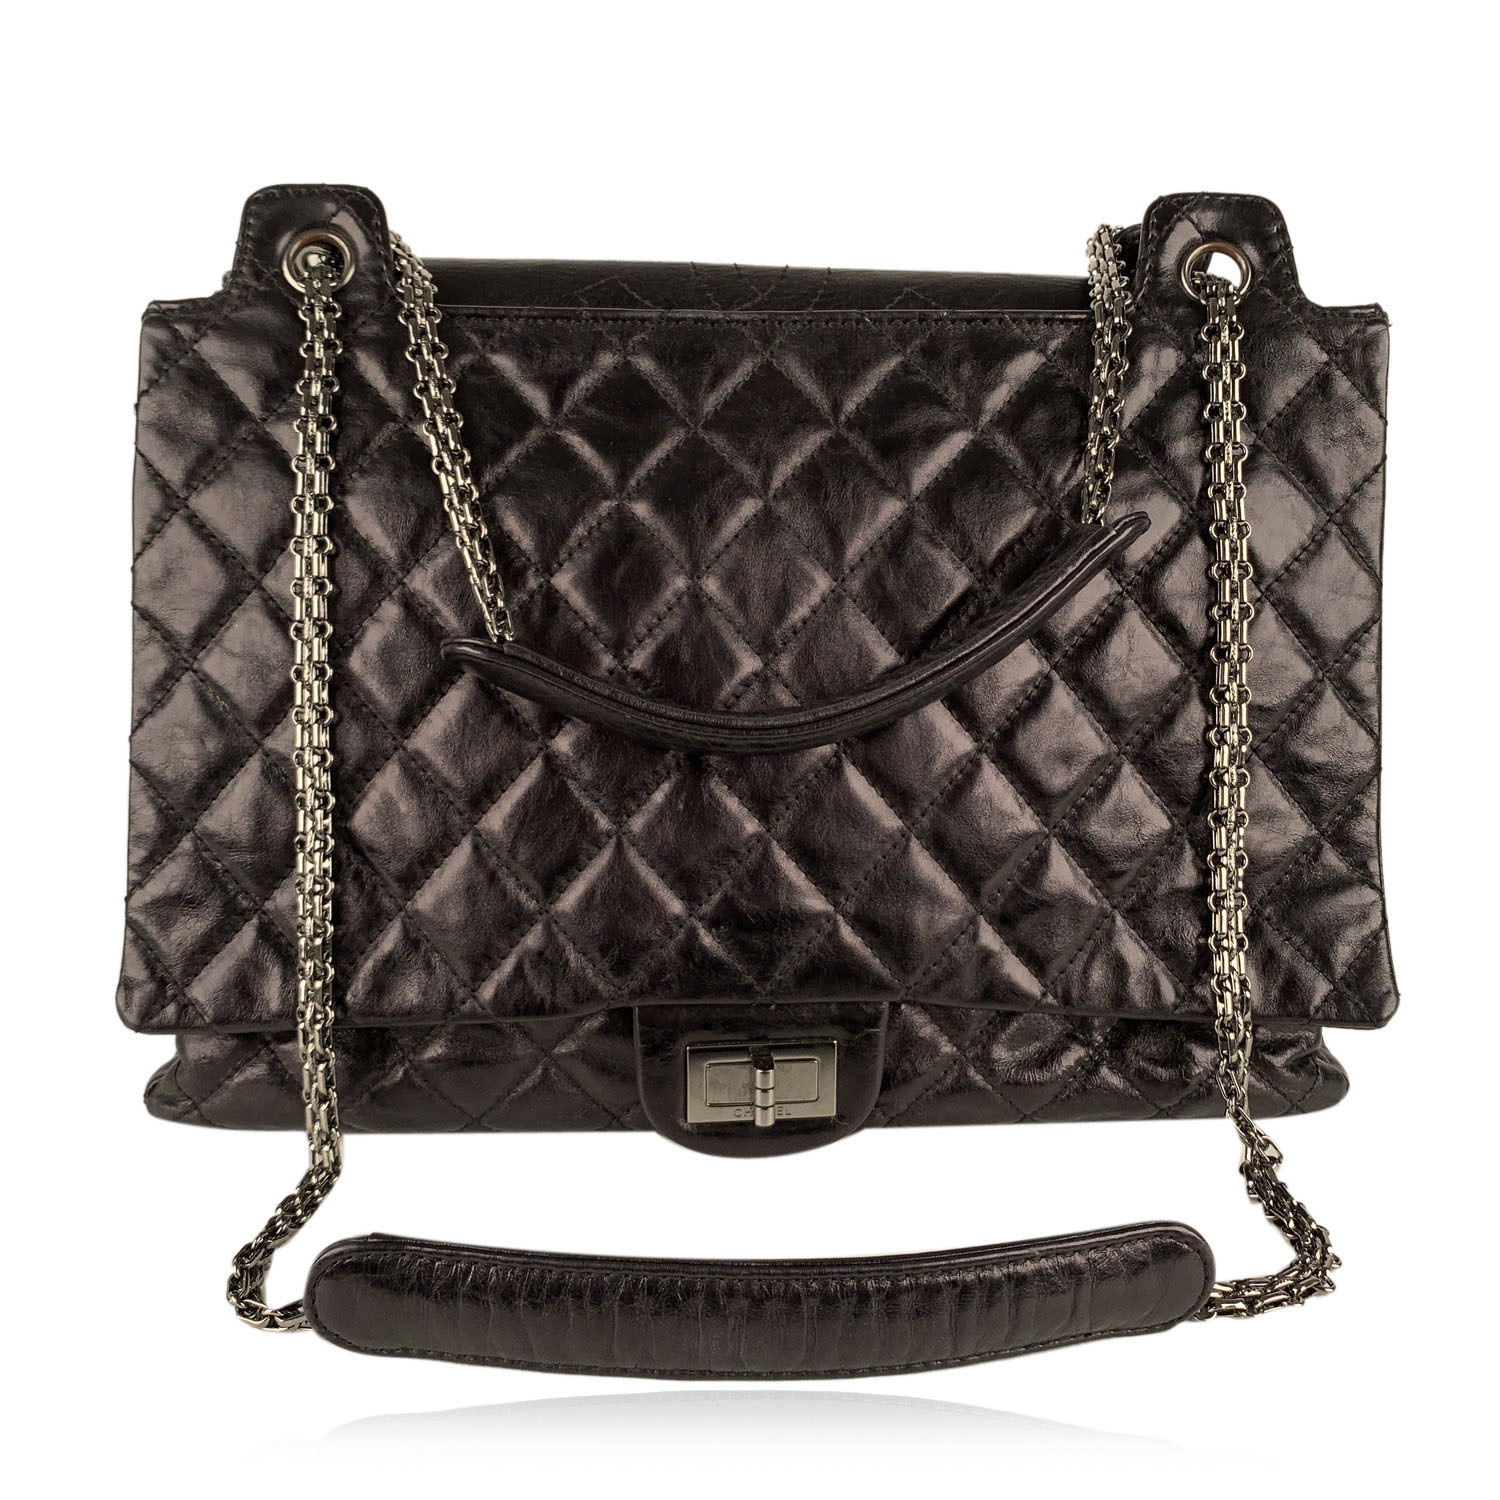 Authentic Chanel Black Quilted Leather Large Reissue 2.55 Accordion Flap Bag